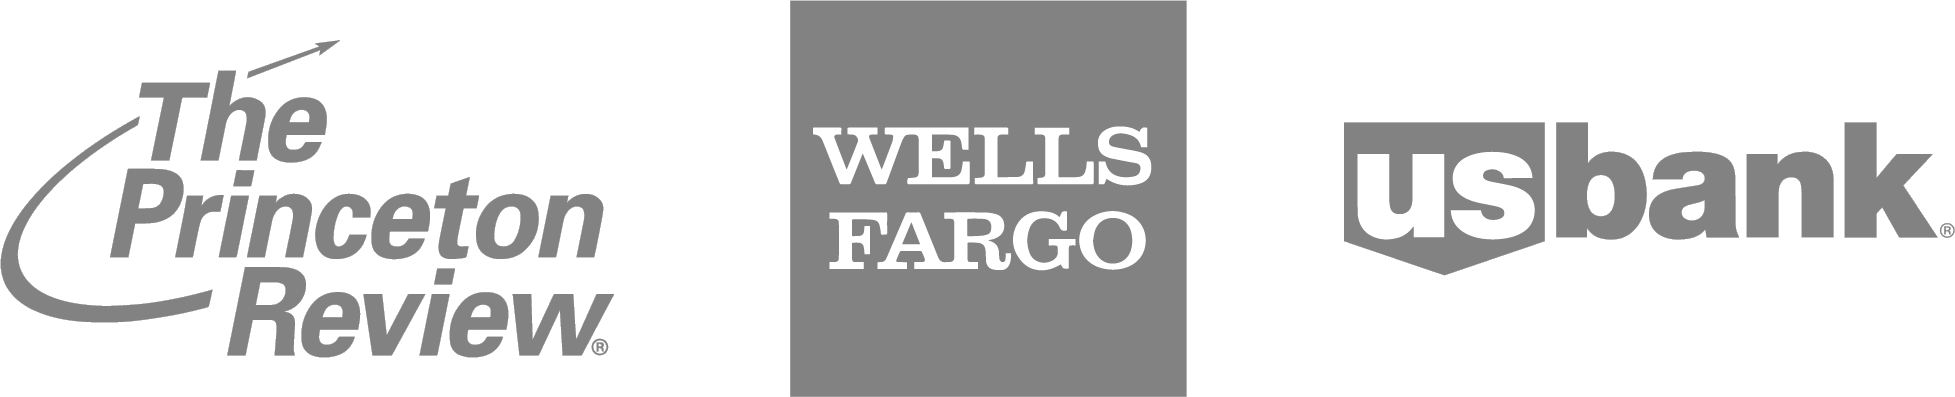 Princeton Review, Wells Fargo, and US Bank